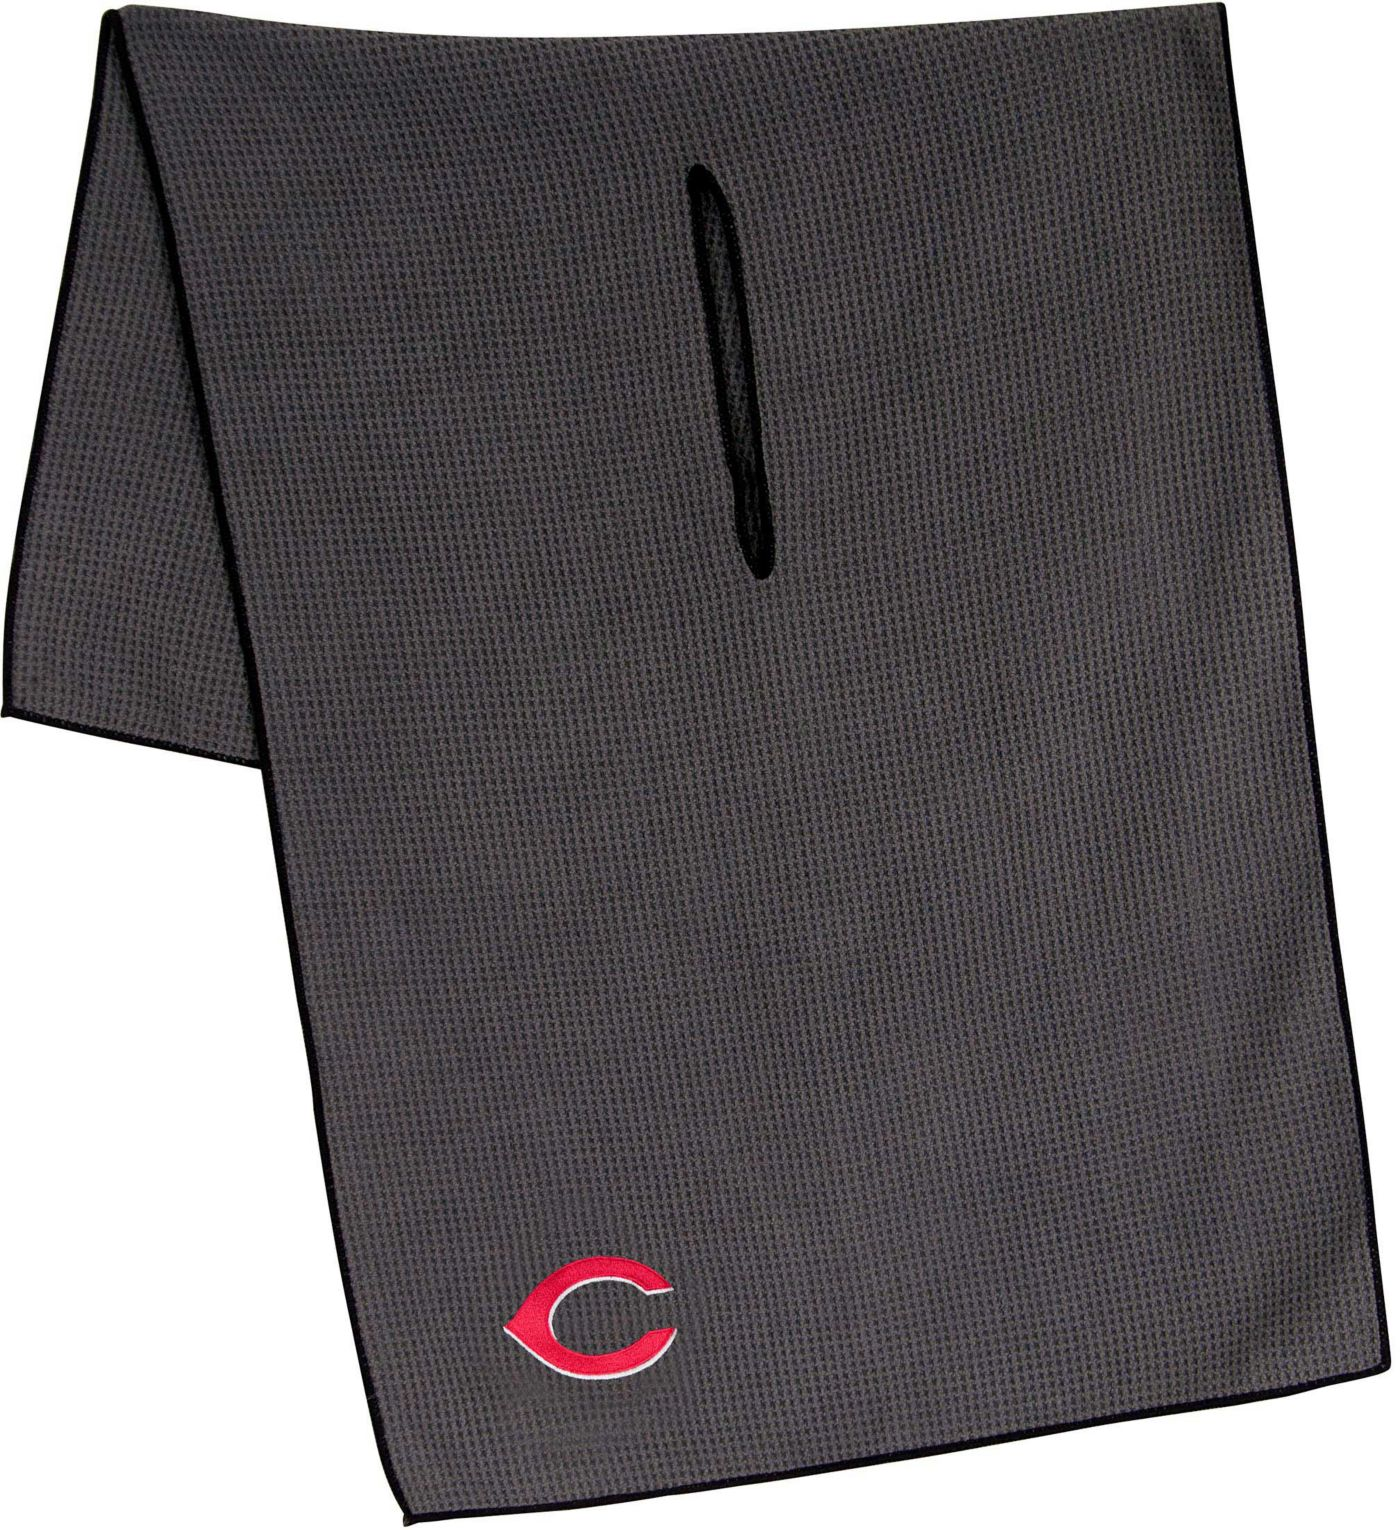 "Team Effort Cincinnati Reds 19"" x 41"" Microfiber Golf Towel"